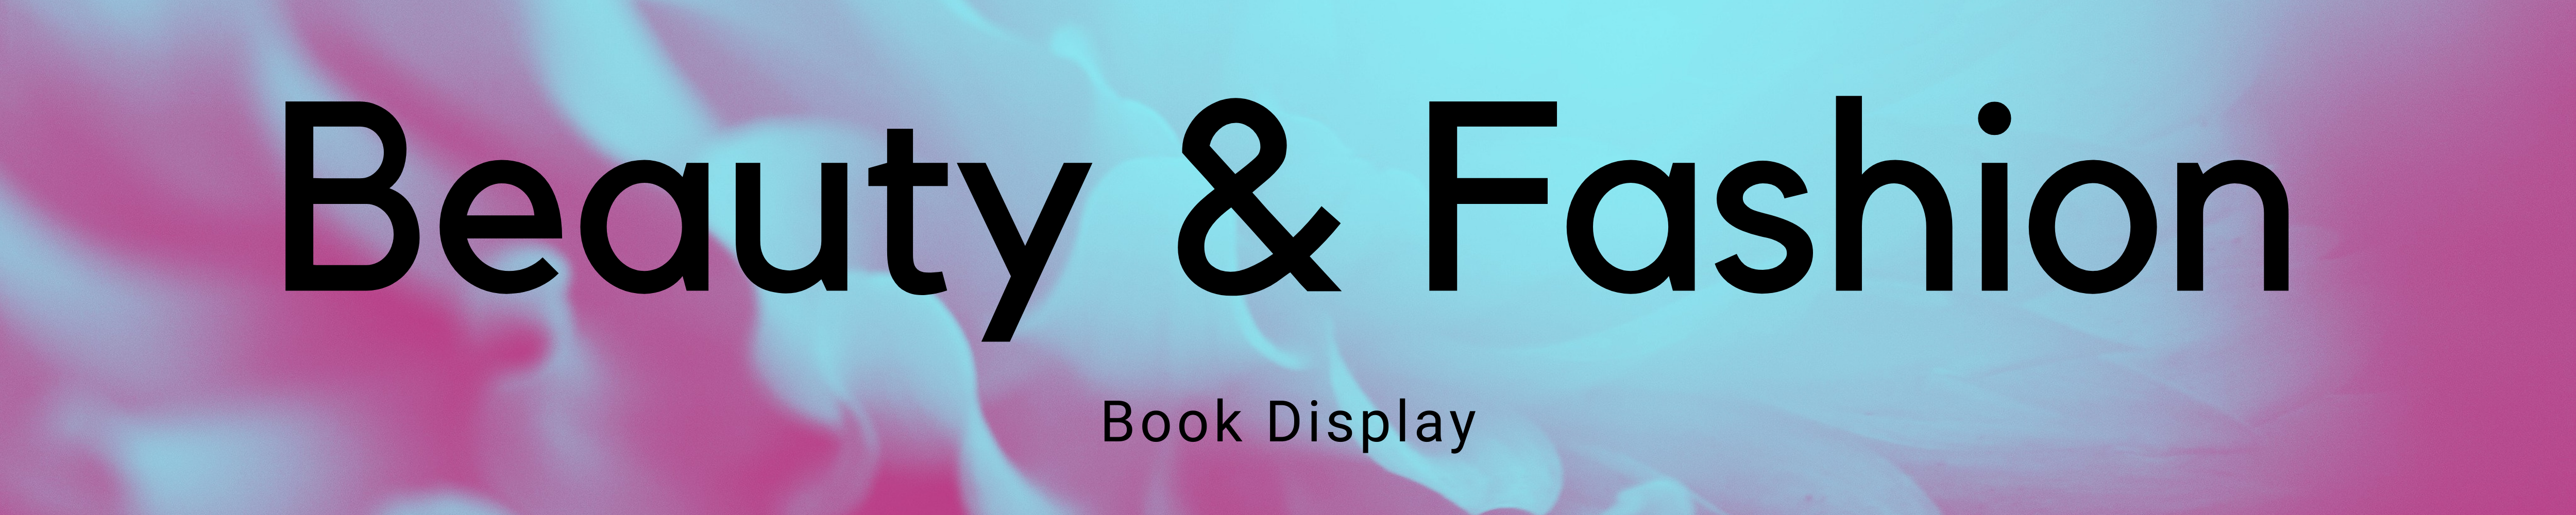 Book Display: Beauty and Fashion